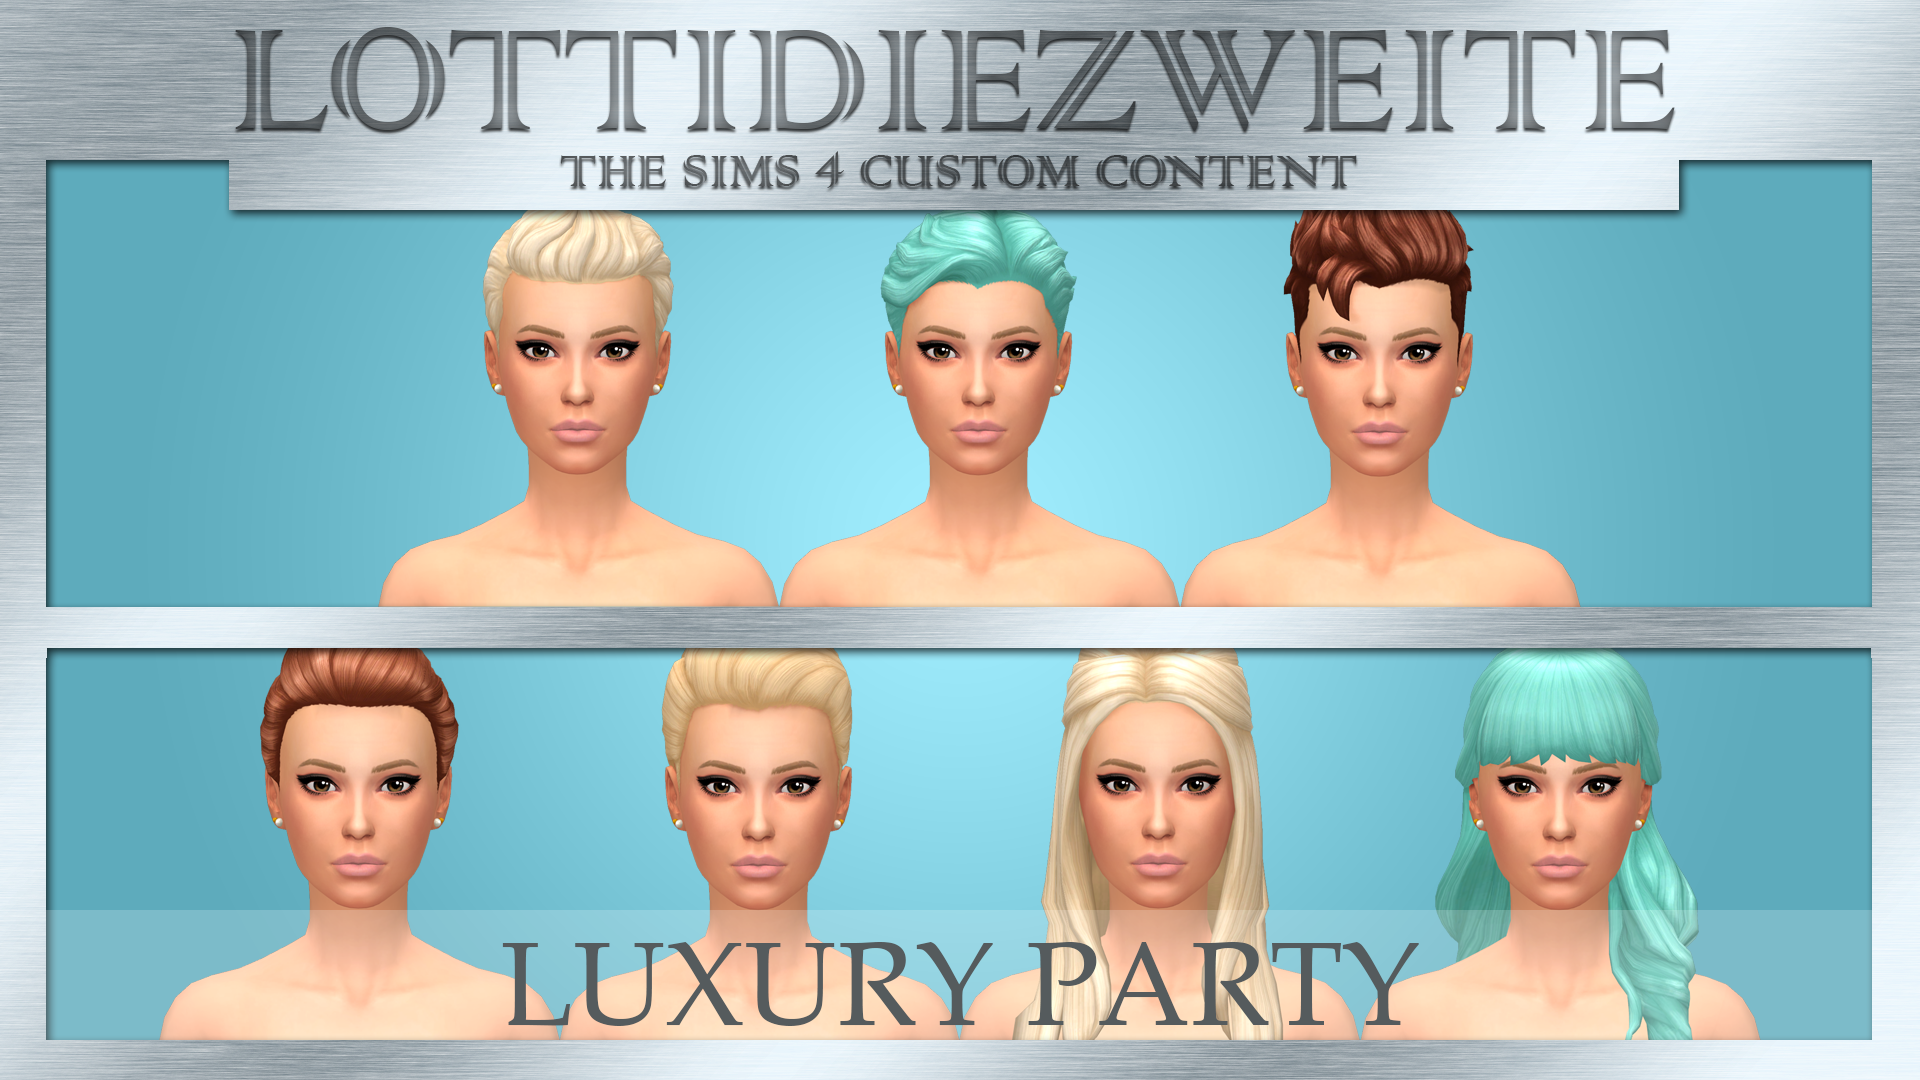 LuxuryParty.png